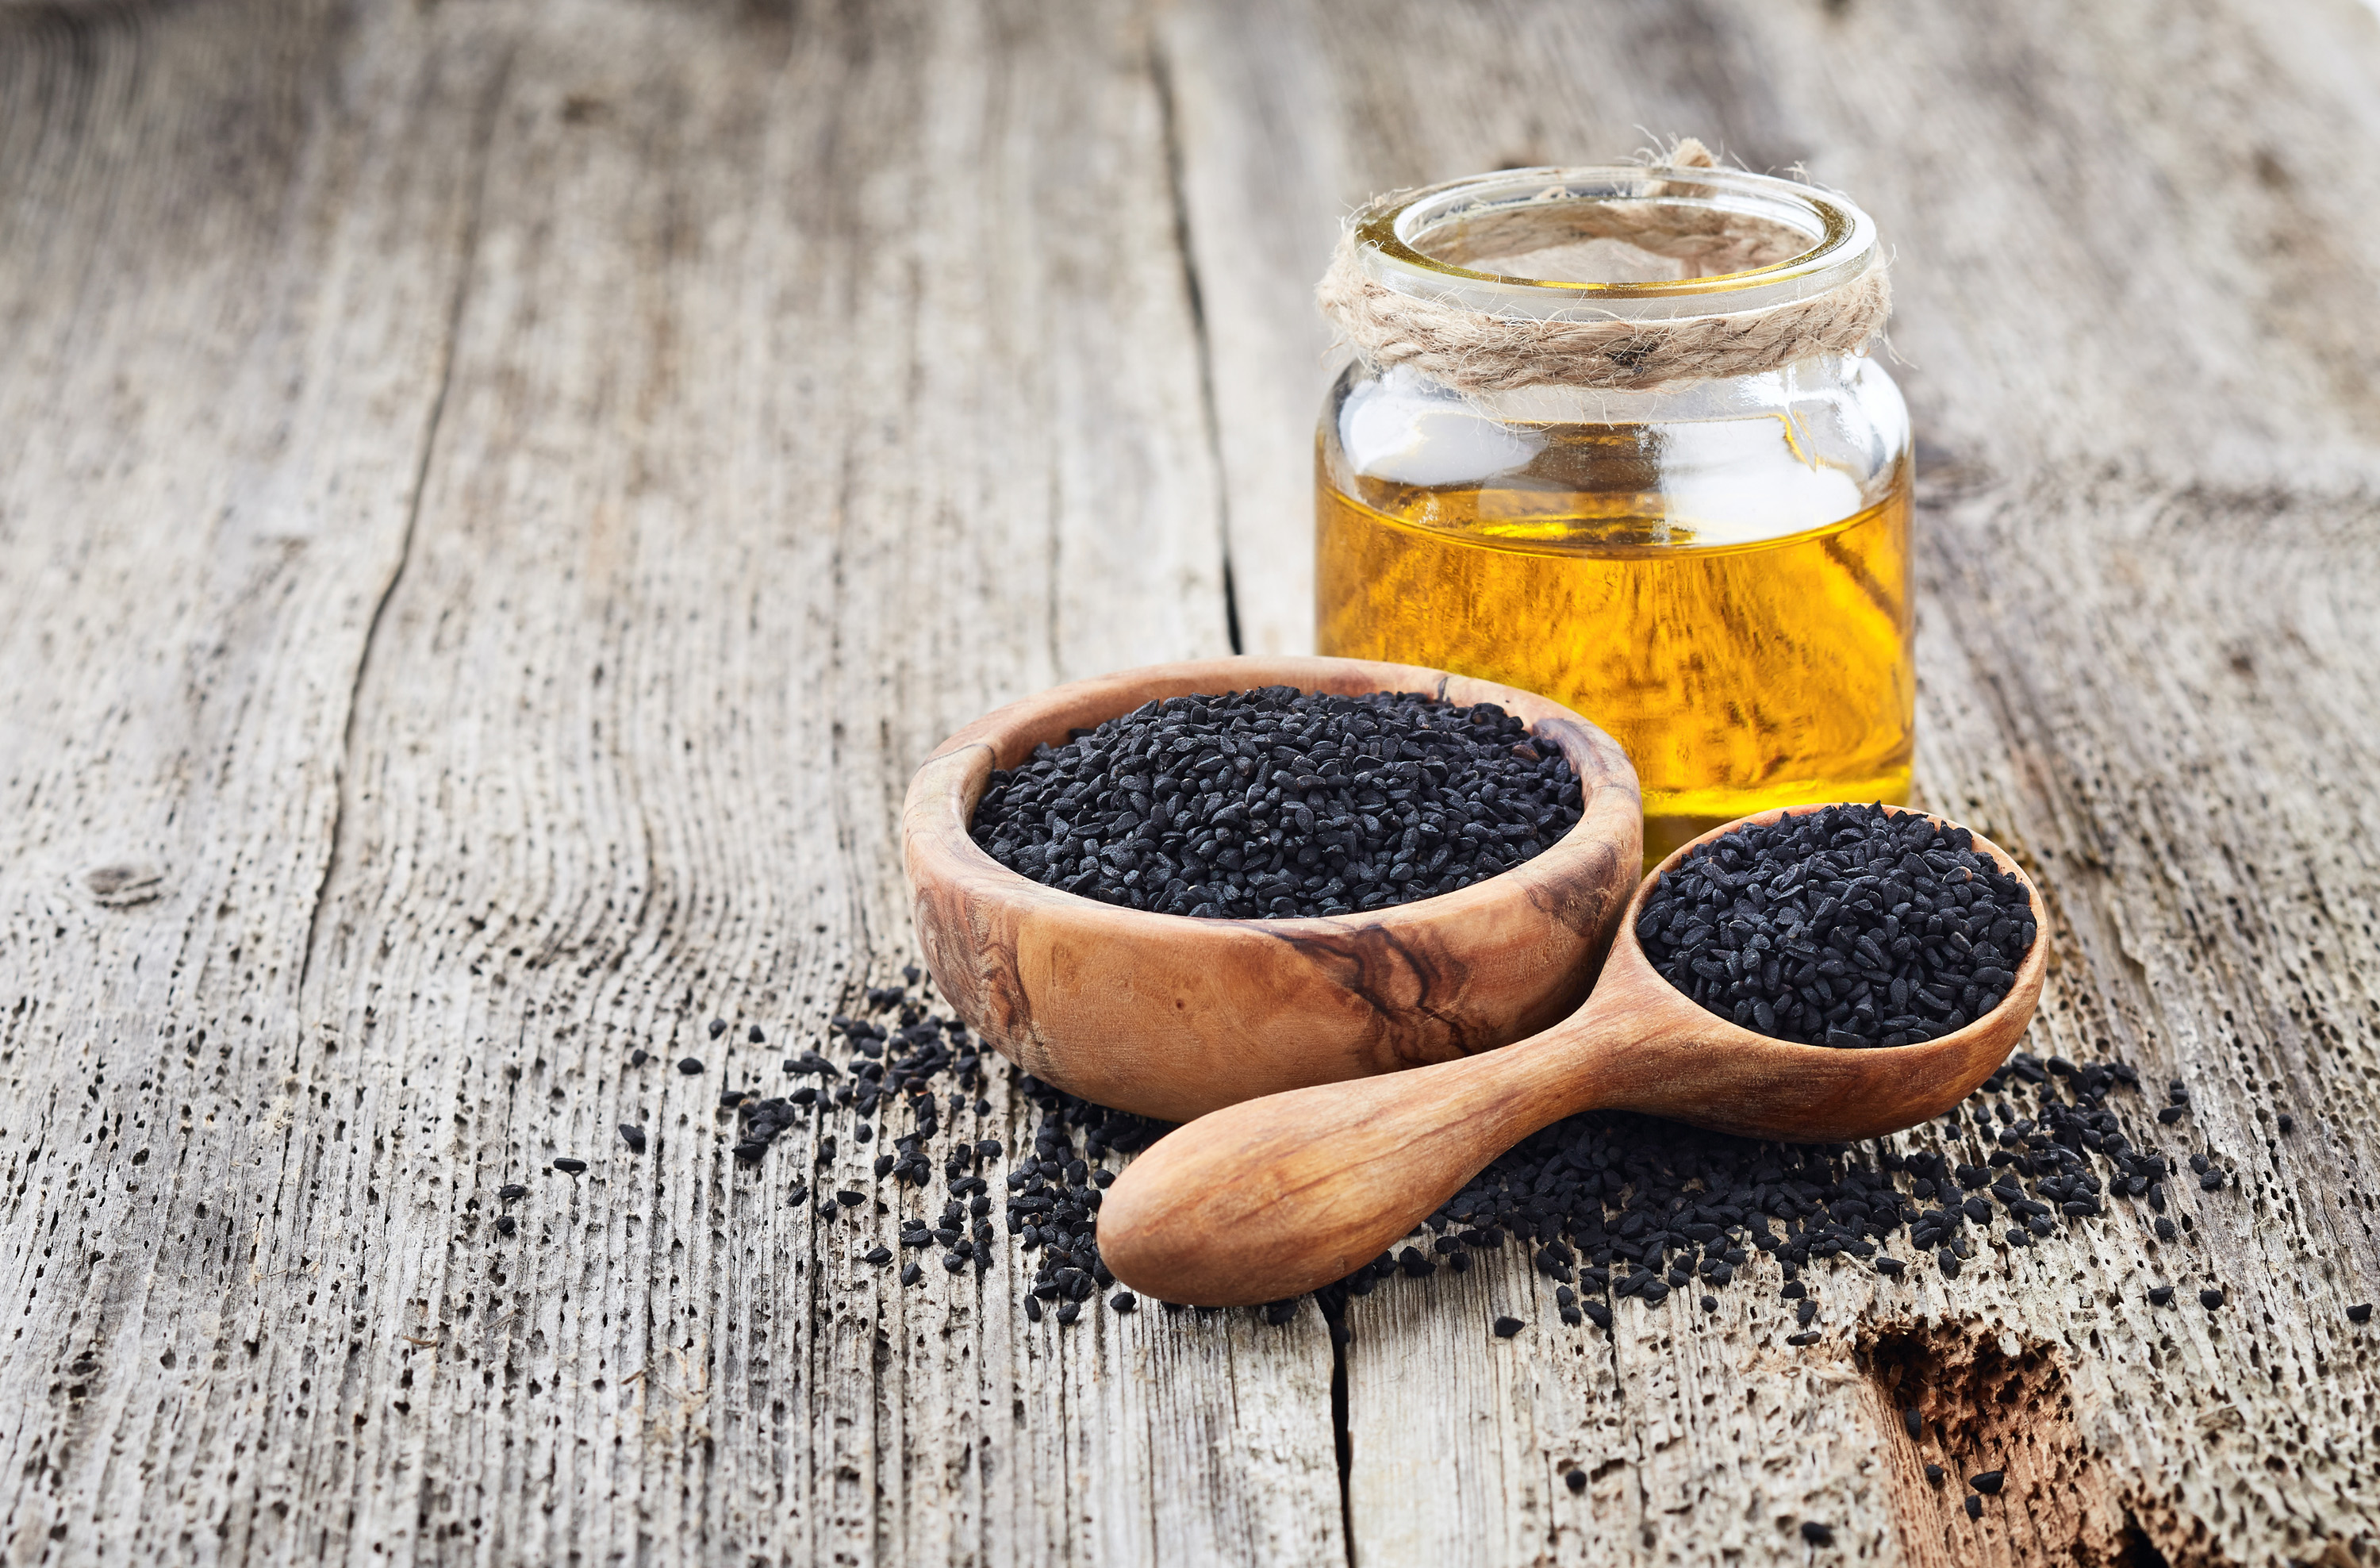 16 Benefits of Black Seed Oil (Nigella sativa) - SelfHacked